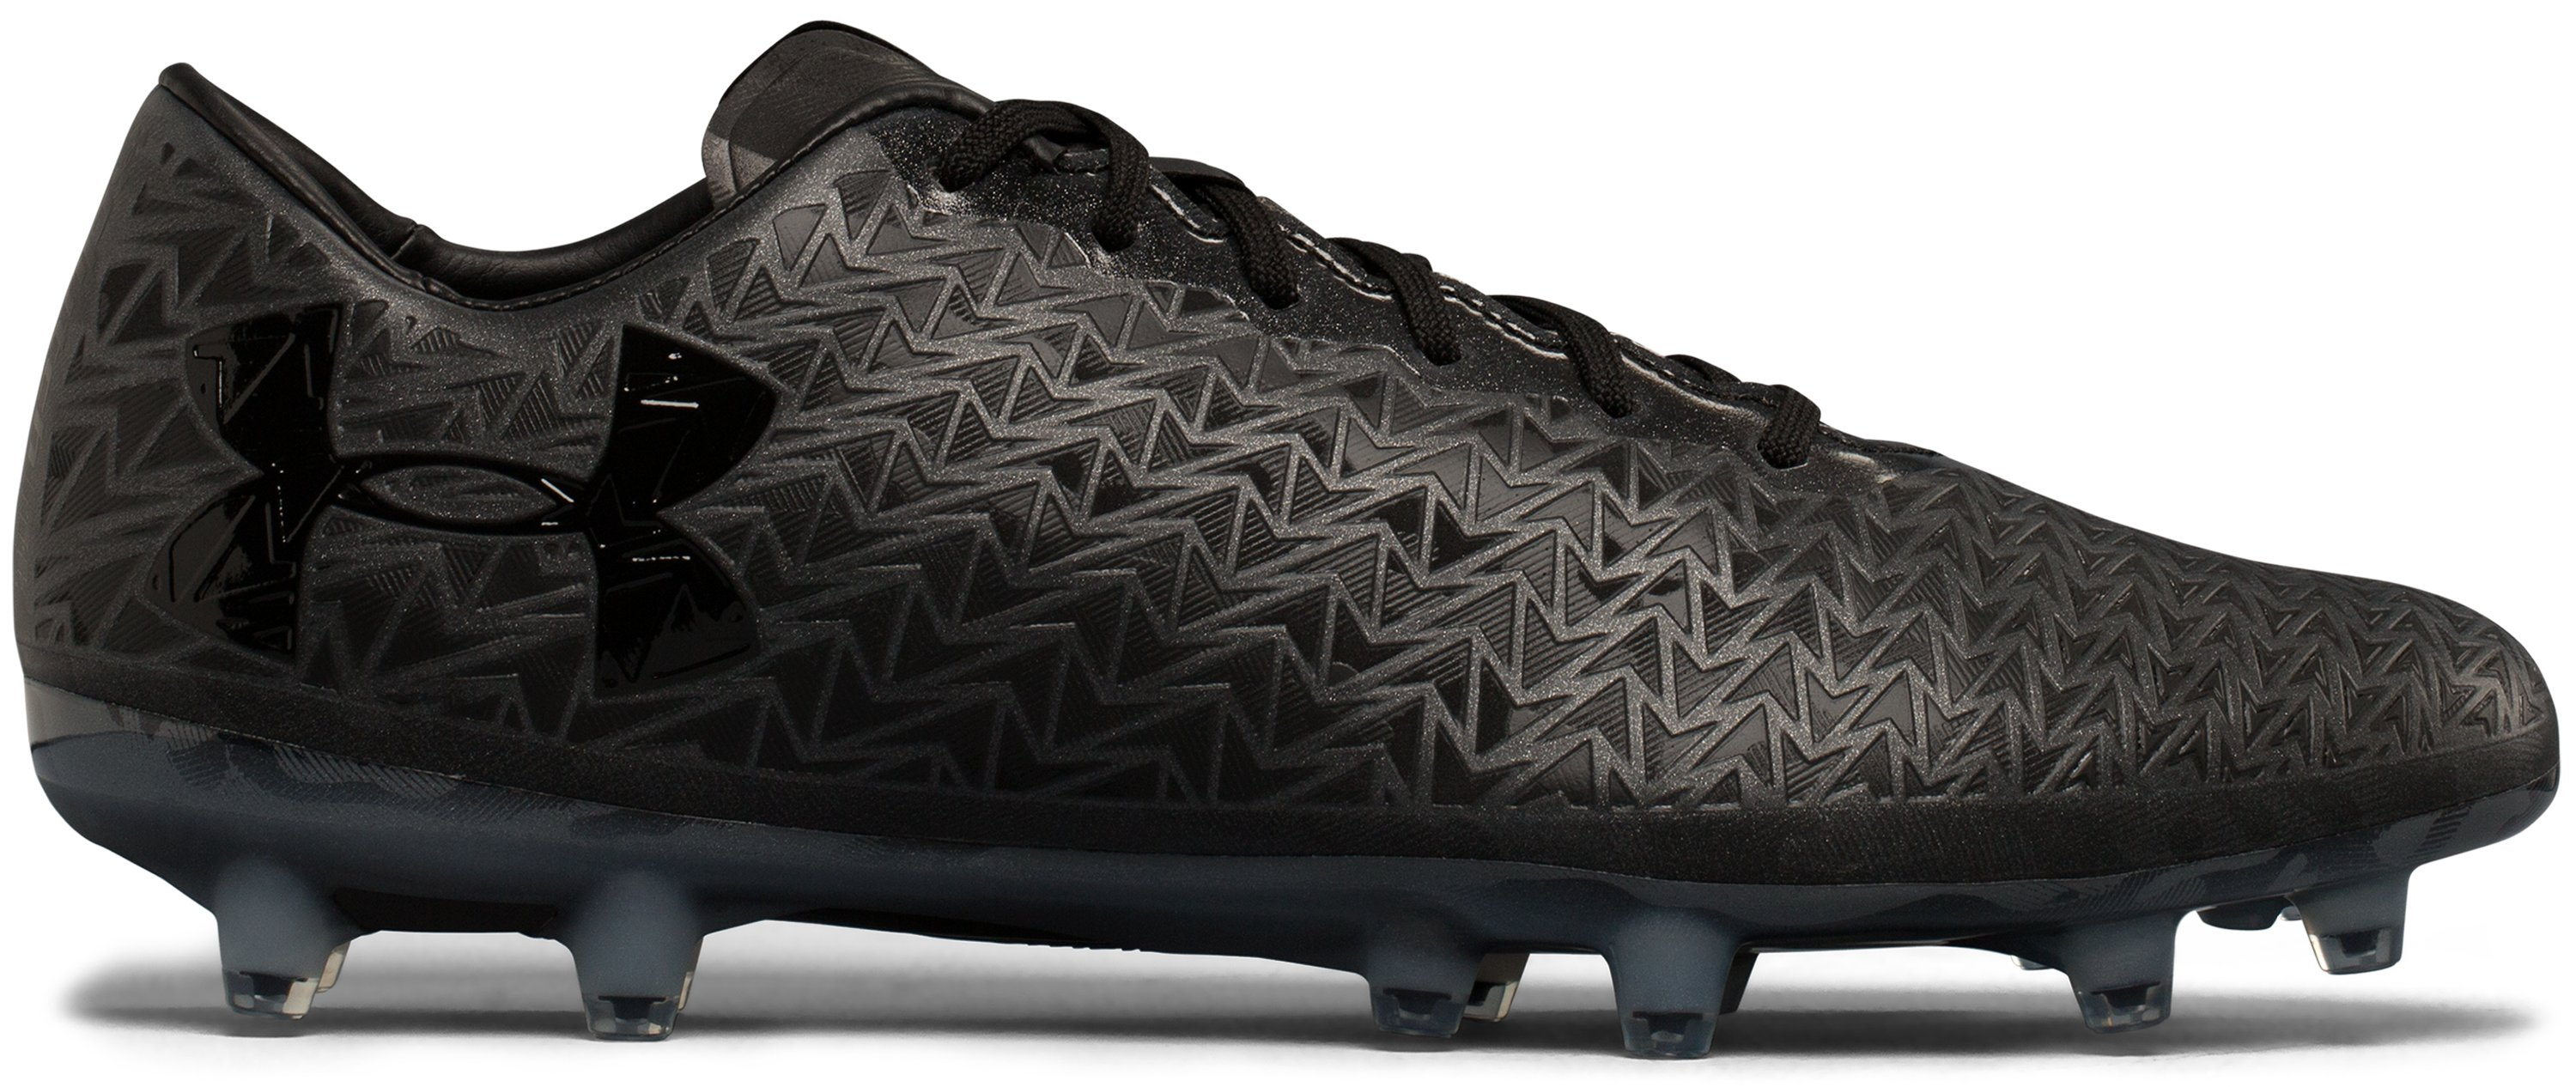 Men's UA ClutchFit® Force 3.0 Firm Ground — Limited Edition Soccer Cleats, Black